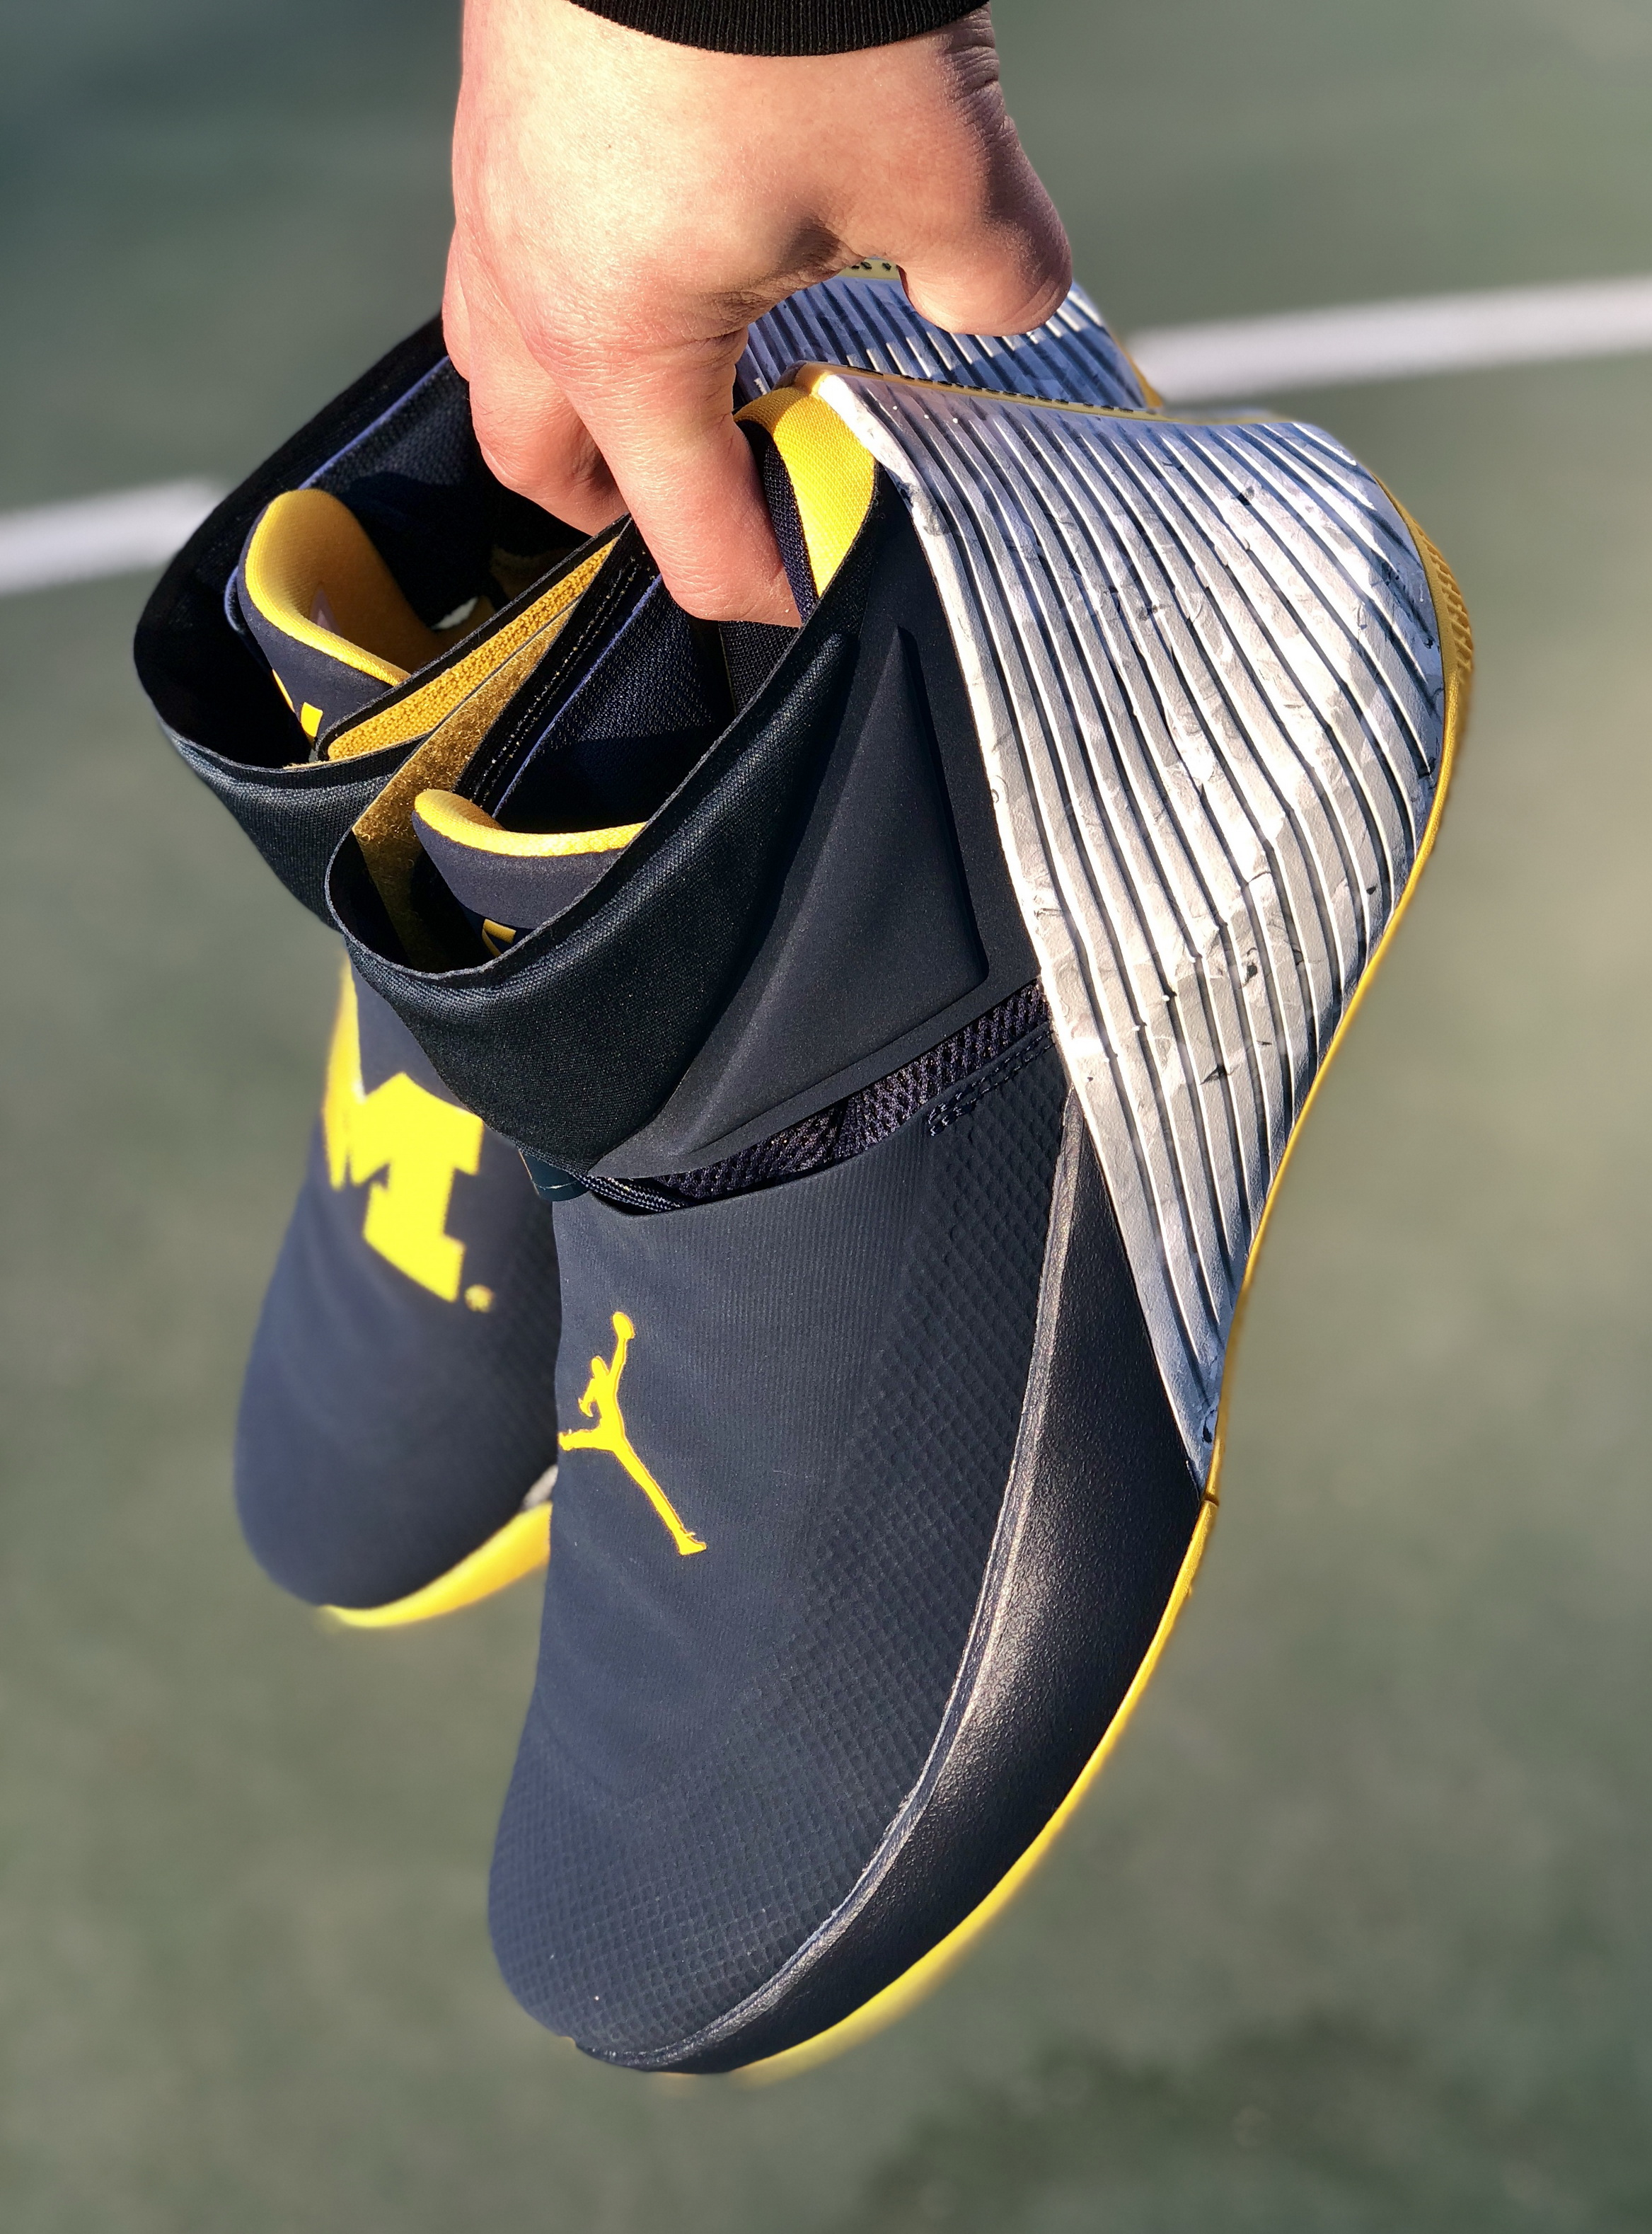 effcc9911c4 A Detailed Look at the Jordan Why Not Zer0.1 'Michigan' - WearTesters